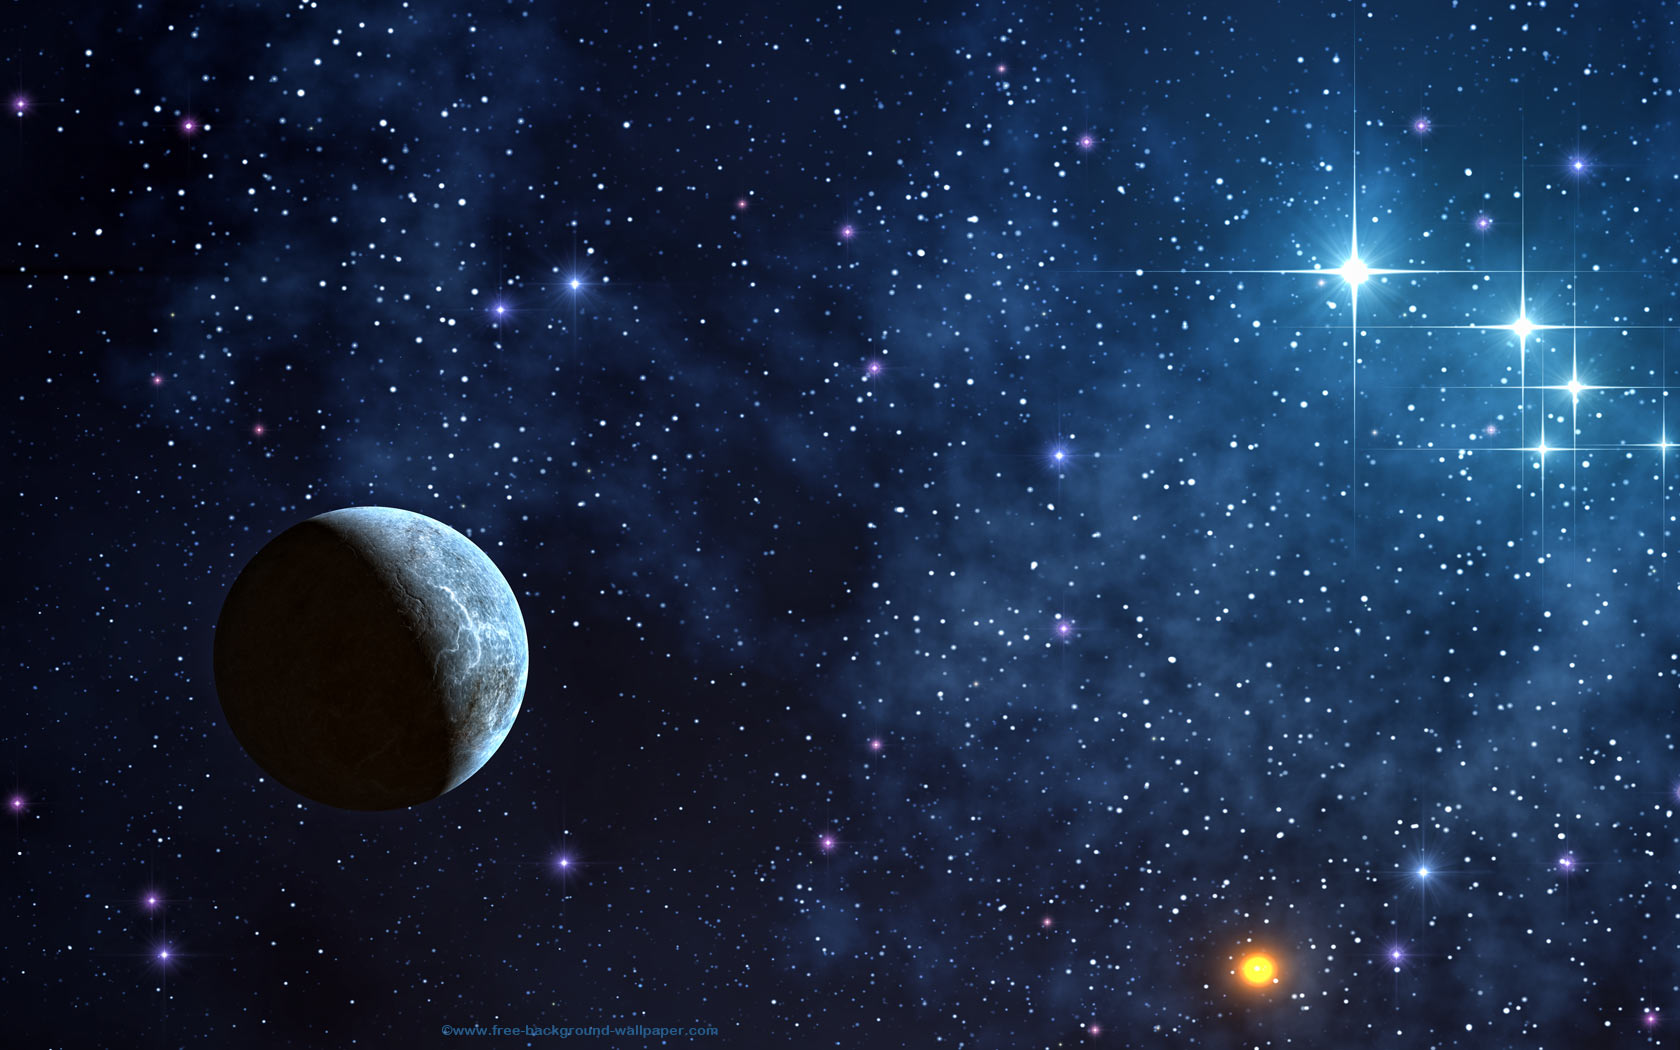 Shinning Stars Space Picture - Space Background Wallpaper - 1680x1050 ...